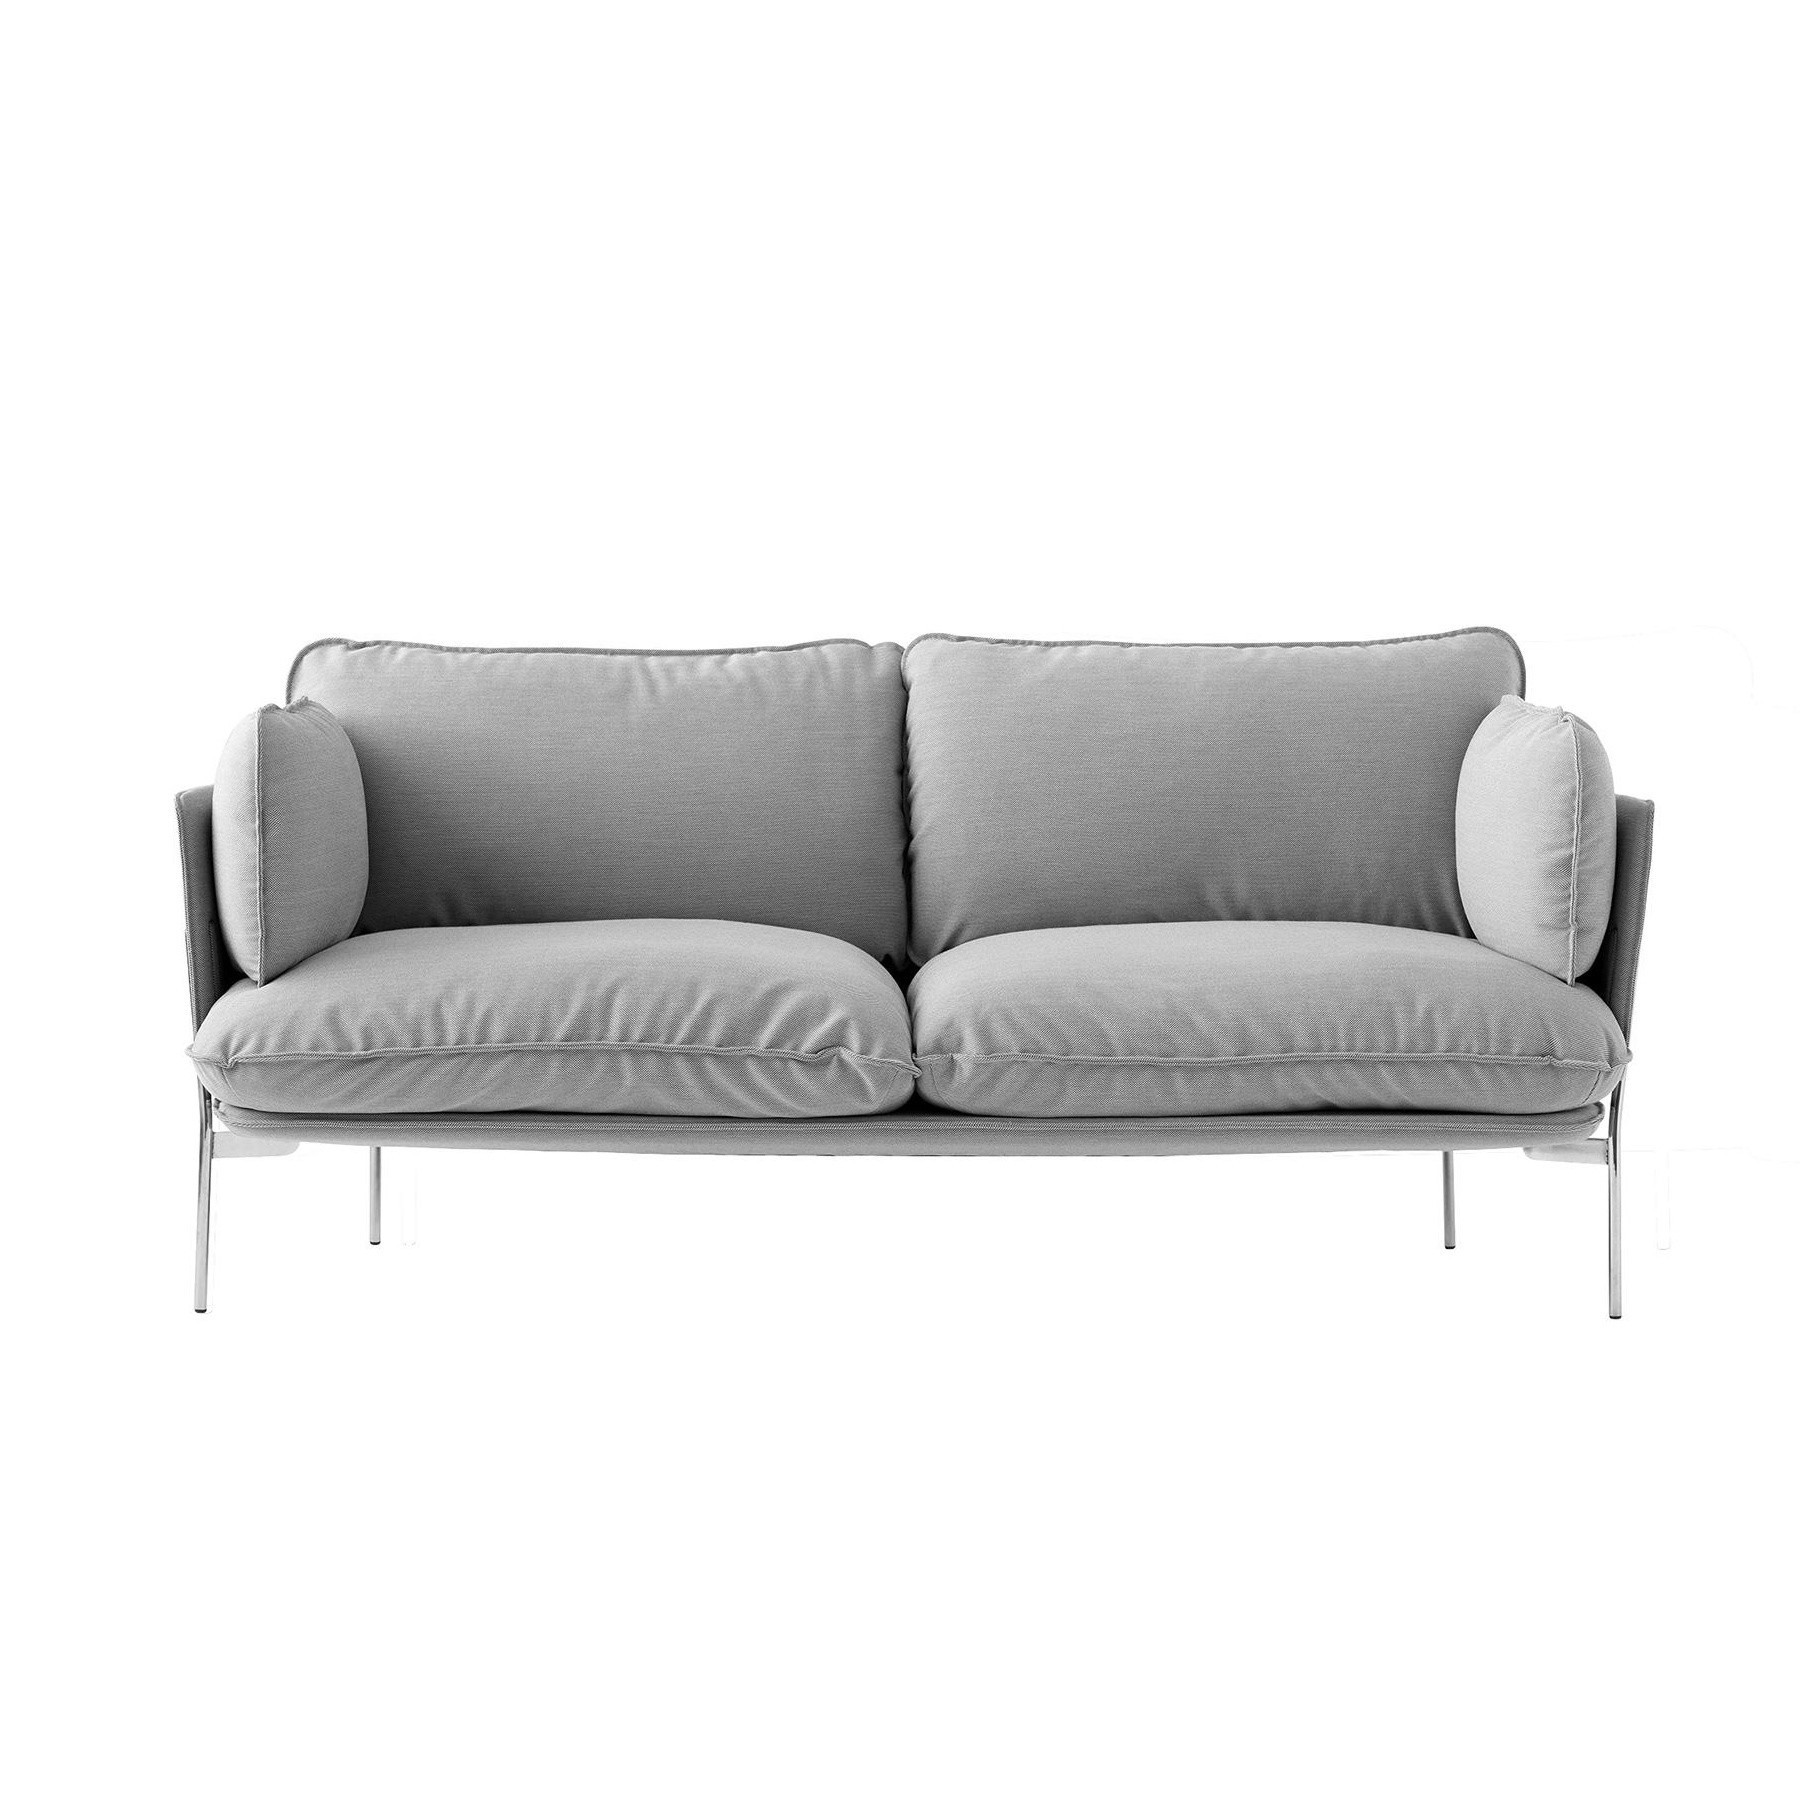 &tradition Cloud LN2 Sofa 2-Sitzer | AmbienteDirect